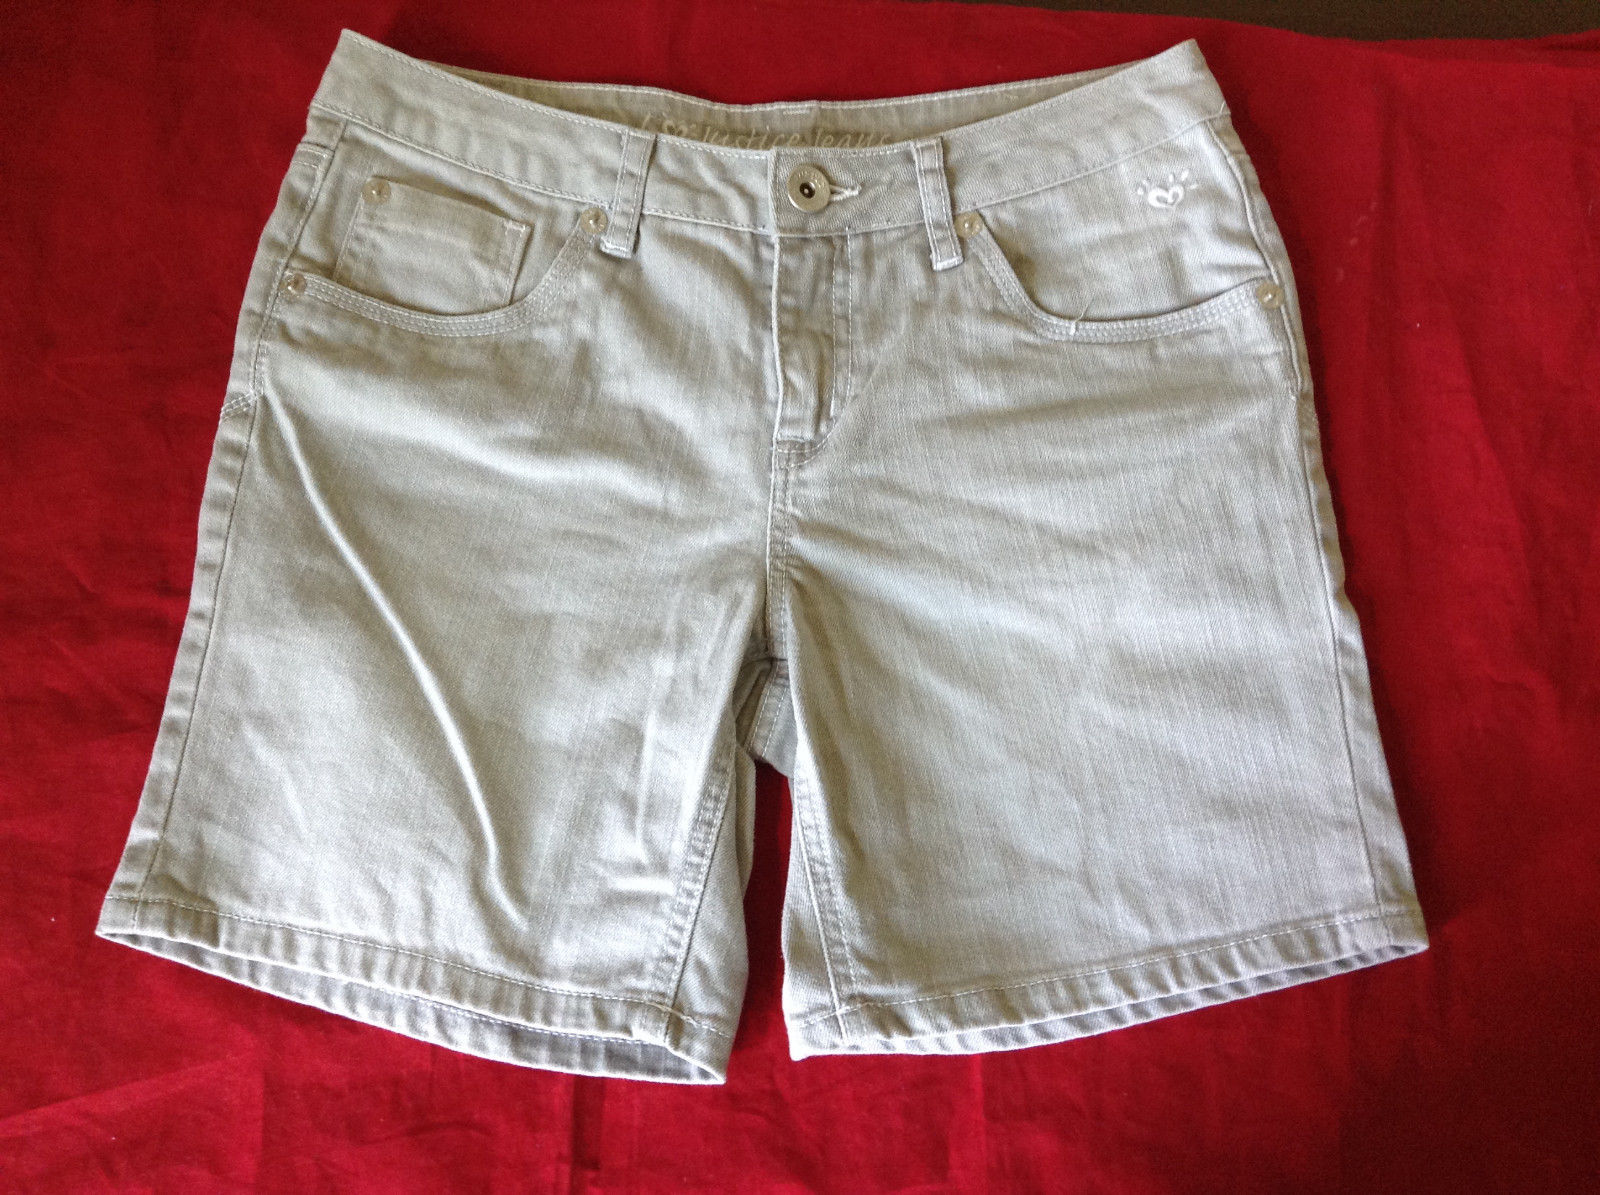 Light Gray Shorts by Justice 99 Percent Cotton 1 Percent Spandex Size 14.5